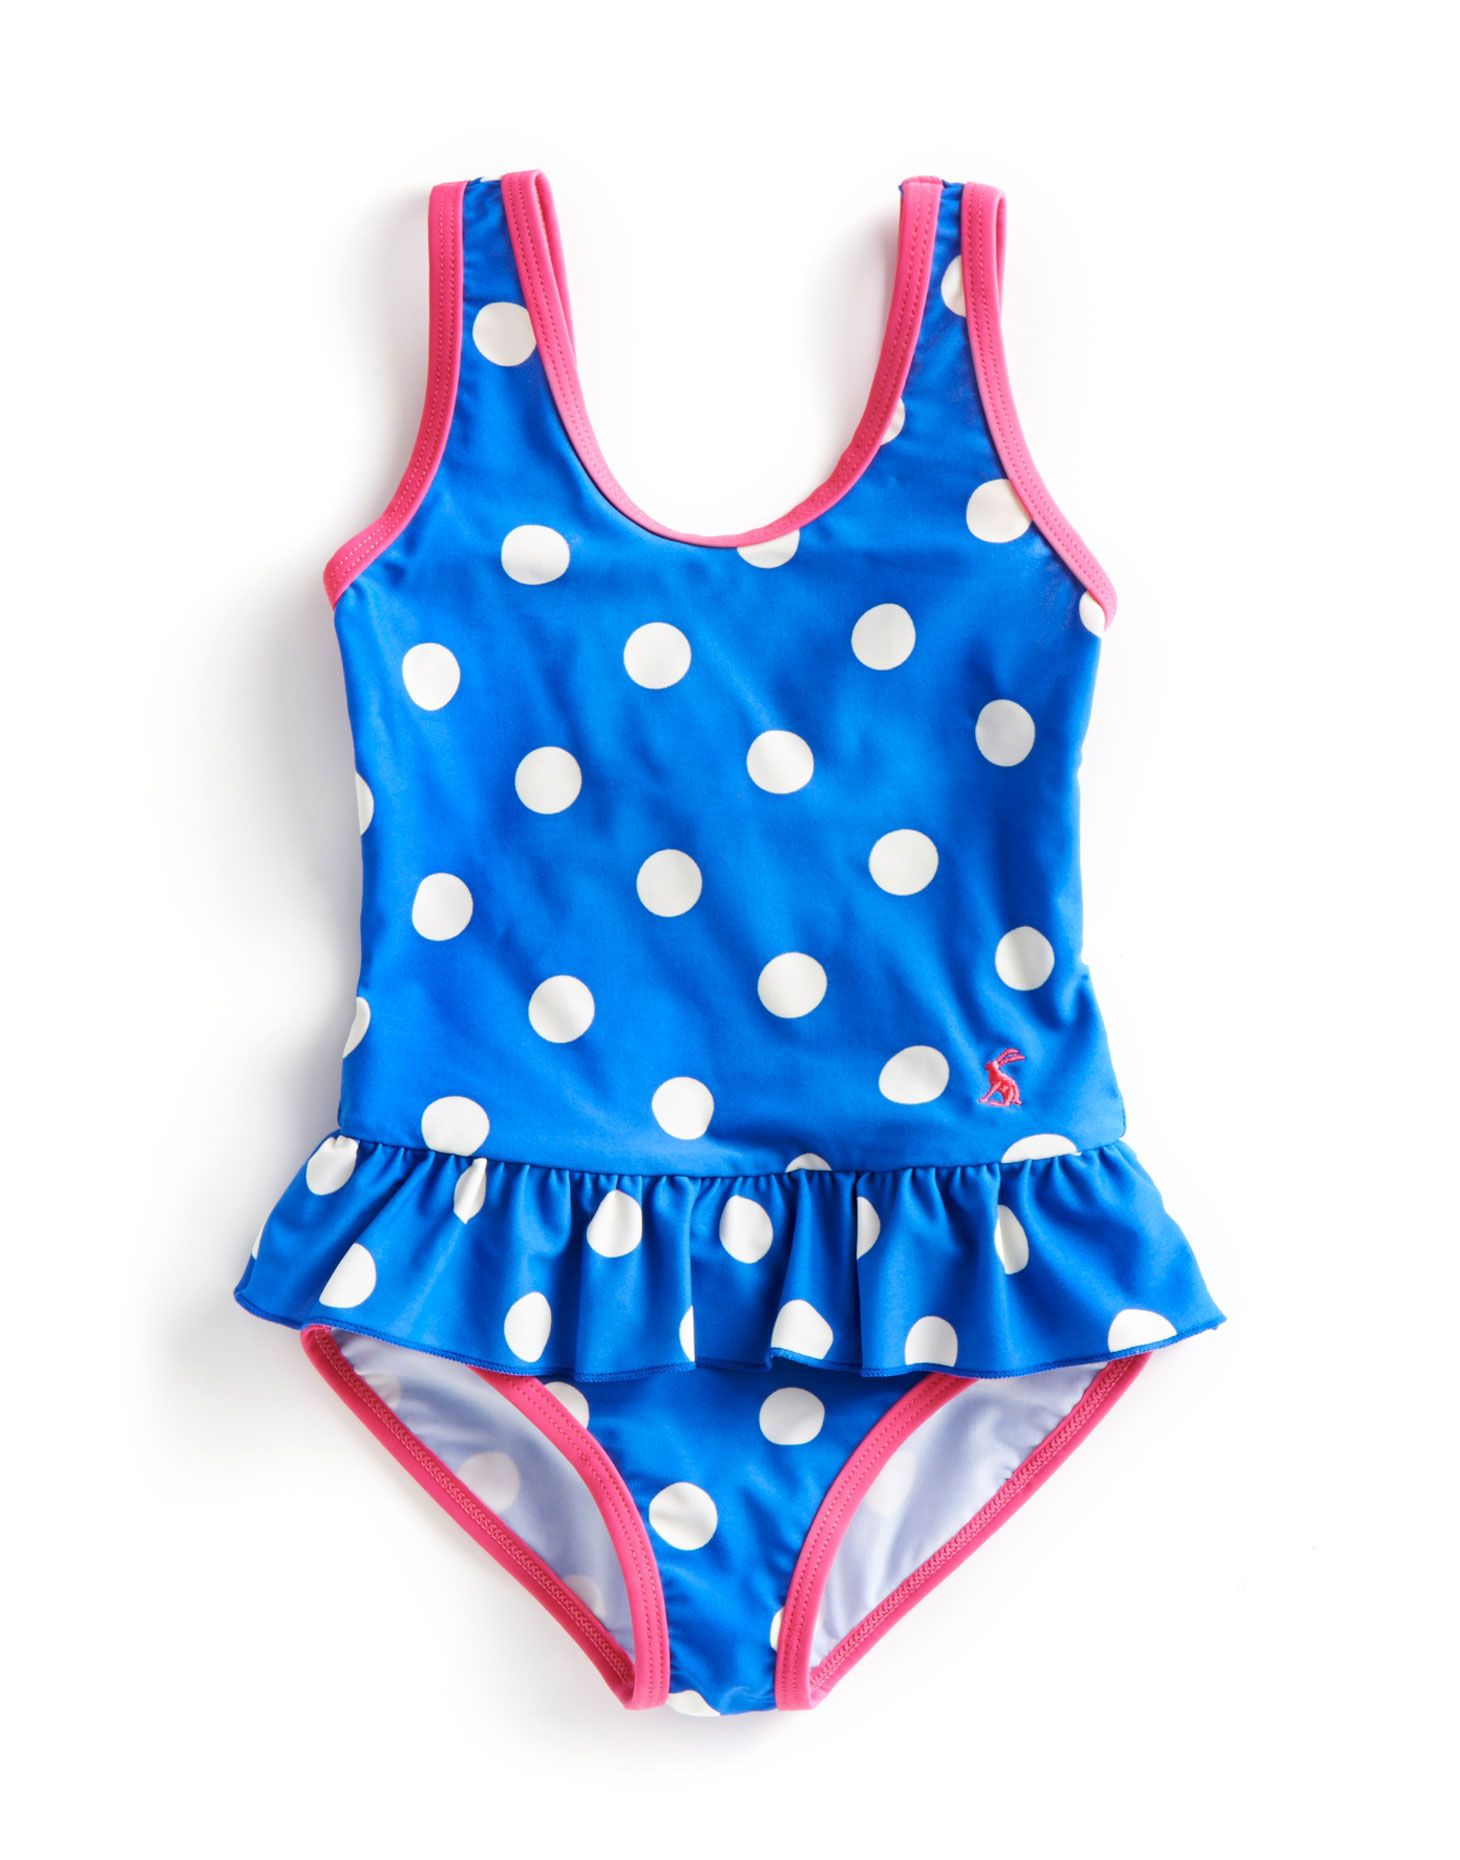 JNR SANDY Girls Swimming Costume-JOULES SS13 | Design for Kids ...